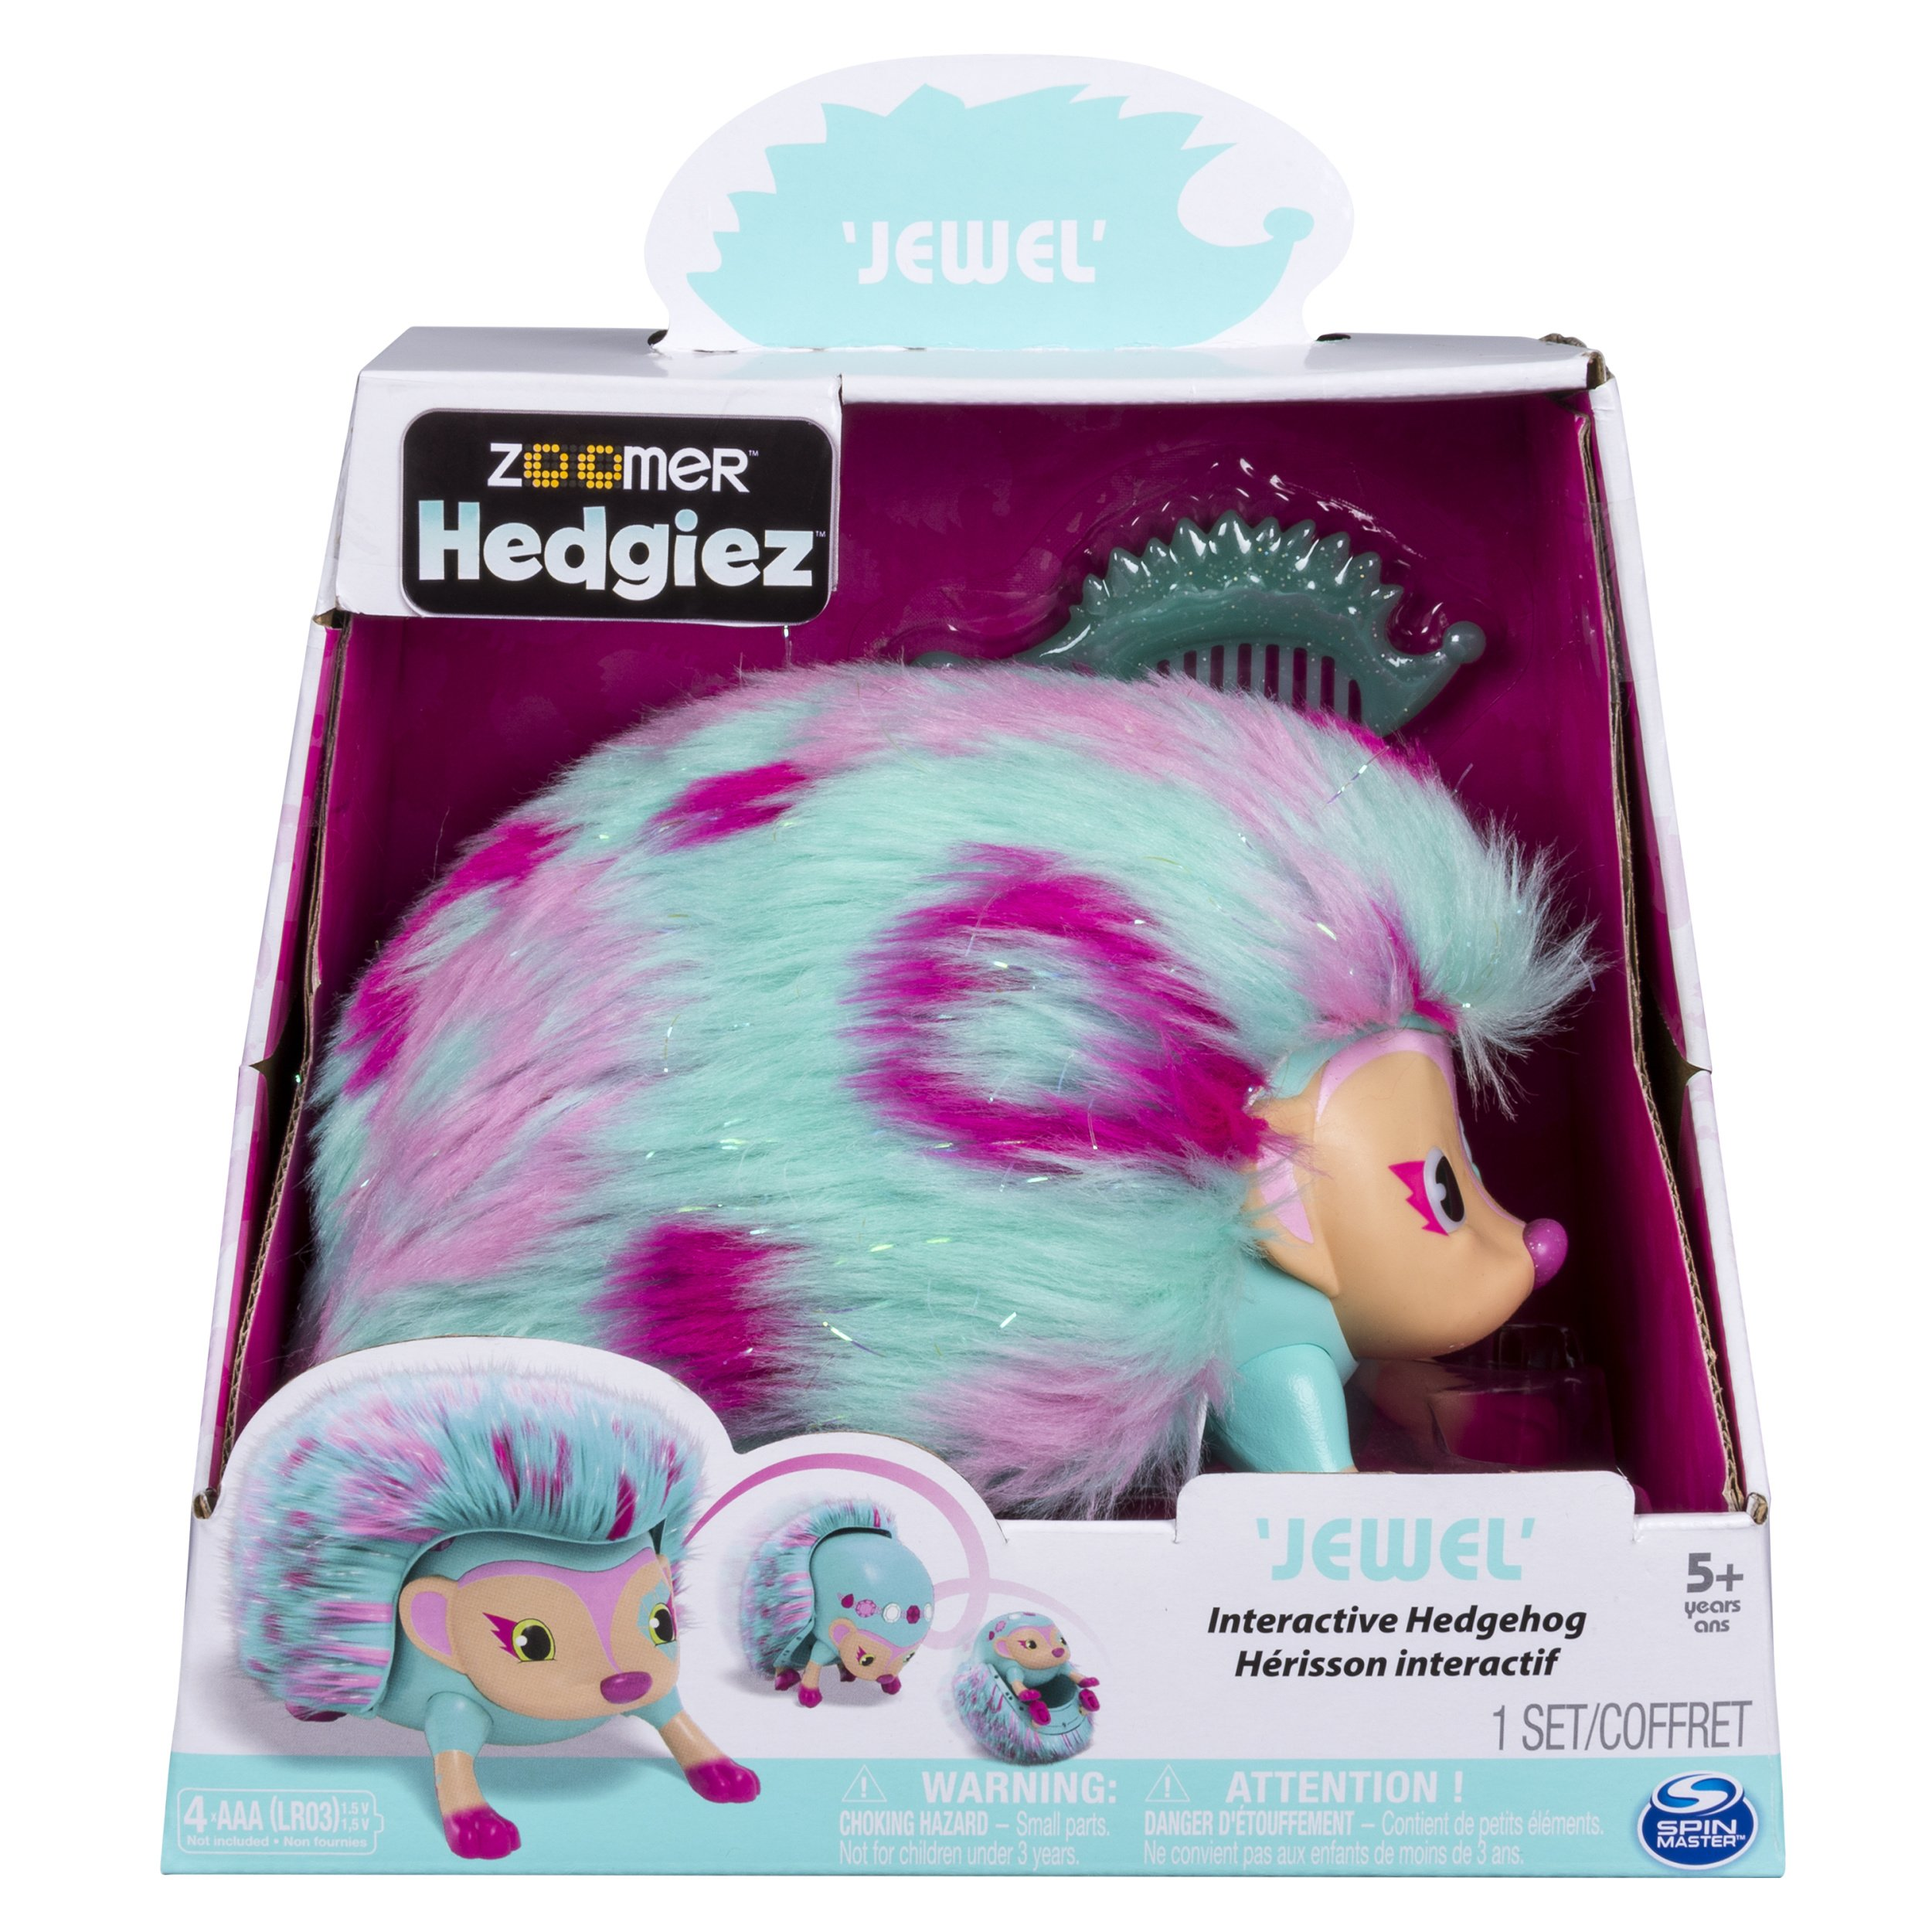 Zoomer Hedgiez Interactive Hedgehog with Lights, Sounds and Sensors, by Spin Master by Zoomer (Image #2)